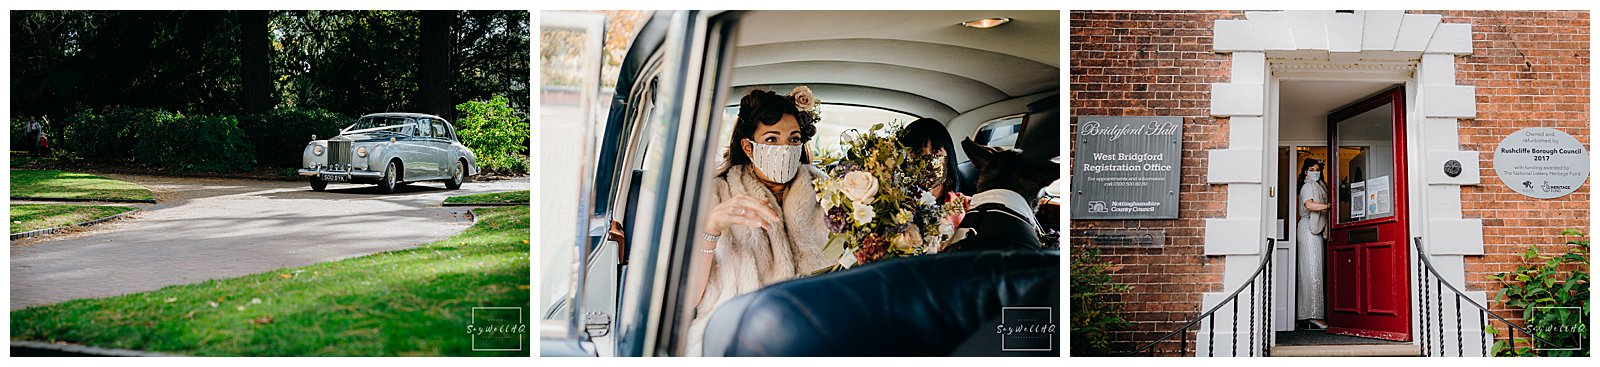 Bride arrives for her Covid restricted wedding at the Bridgford Hall in West Bridgford